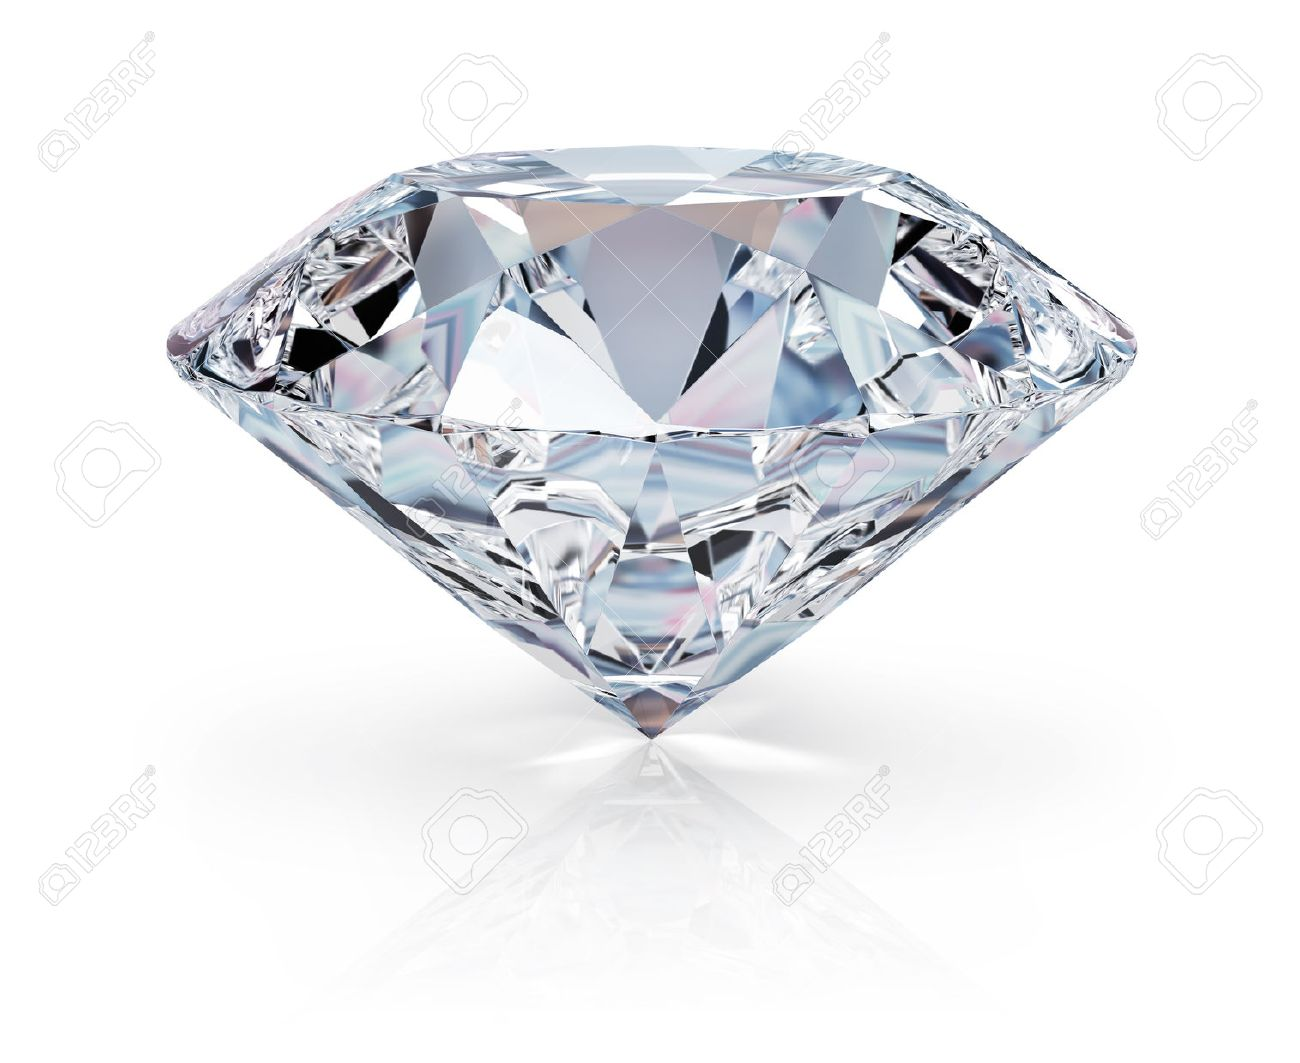 A beautiful sparkling diamond on a light reflective surface. 3d image. Isolated white background. Stock Photo - 43335631